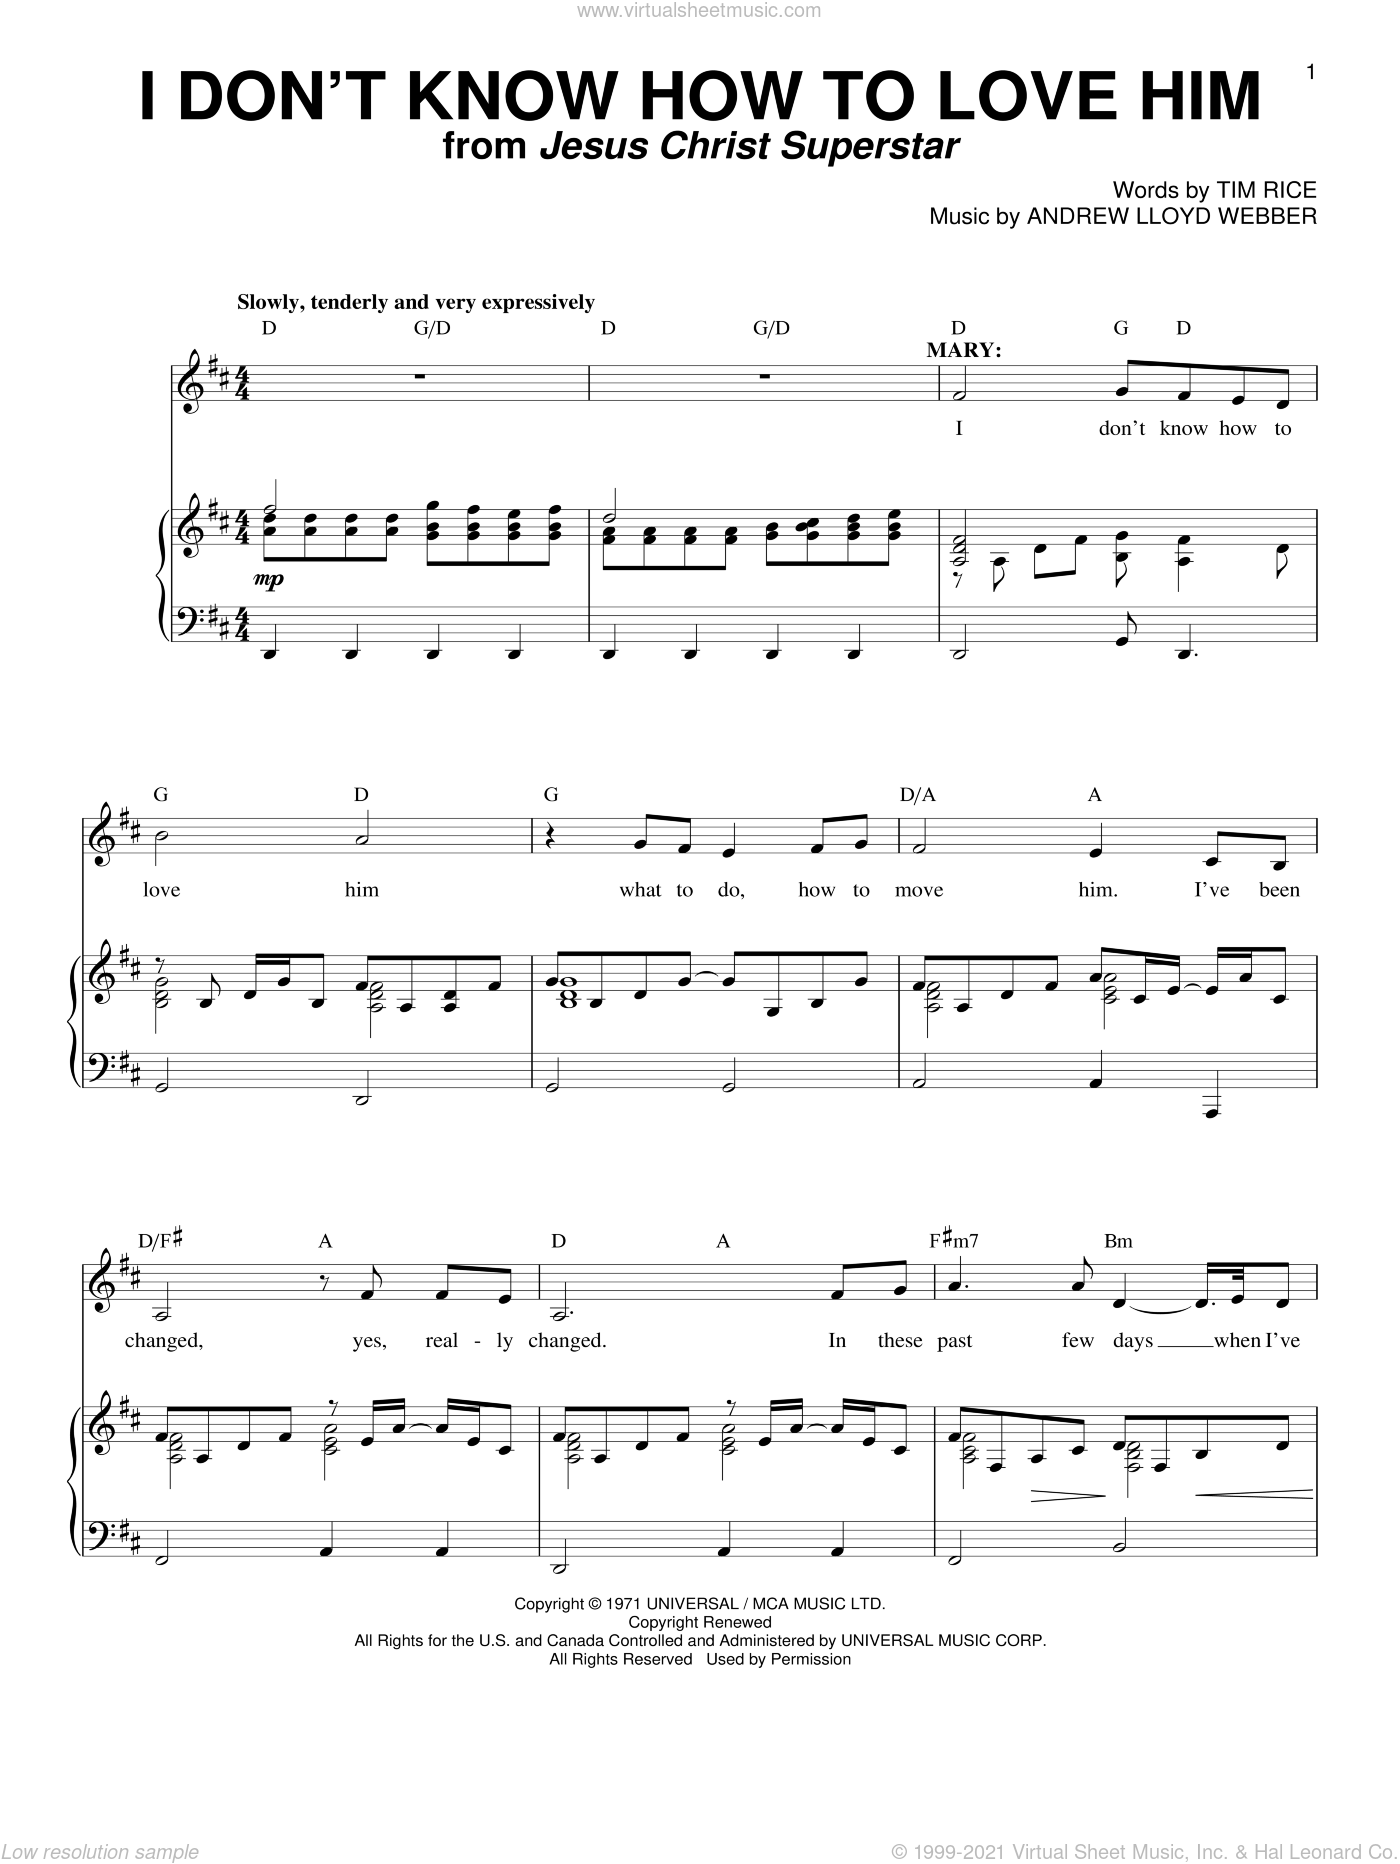 I Don't Know How To Love Him sheet music for voice and piano by Helen Reddy, Jesus Christ Superstar (Musical), Andrew Lloyd Webber and Tim Rice, intermediate skill level